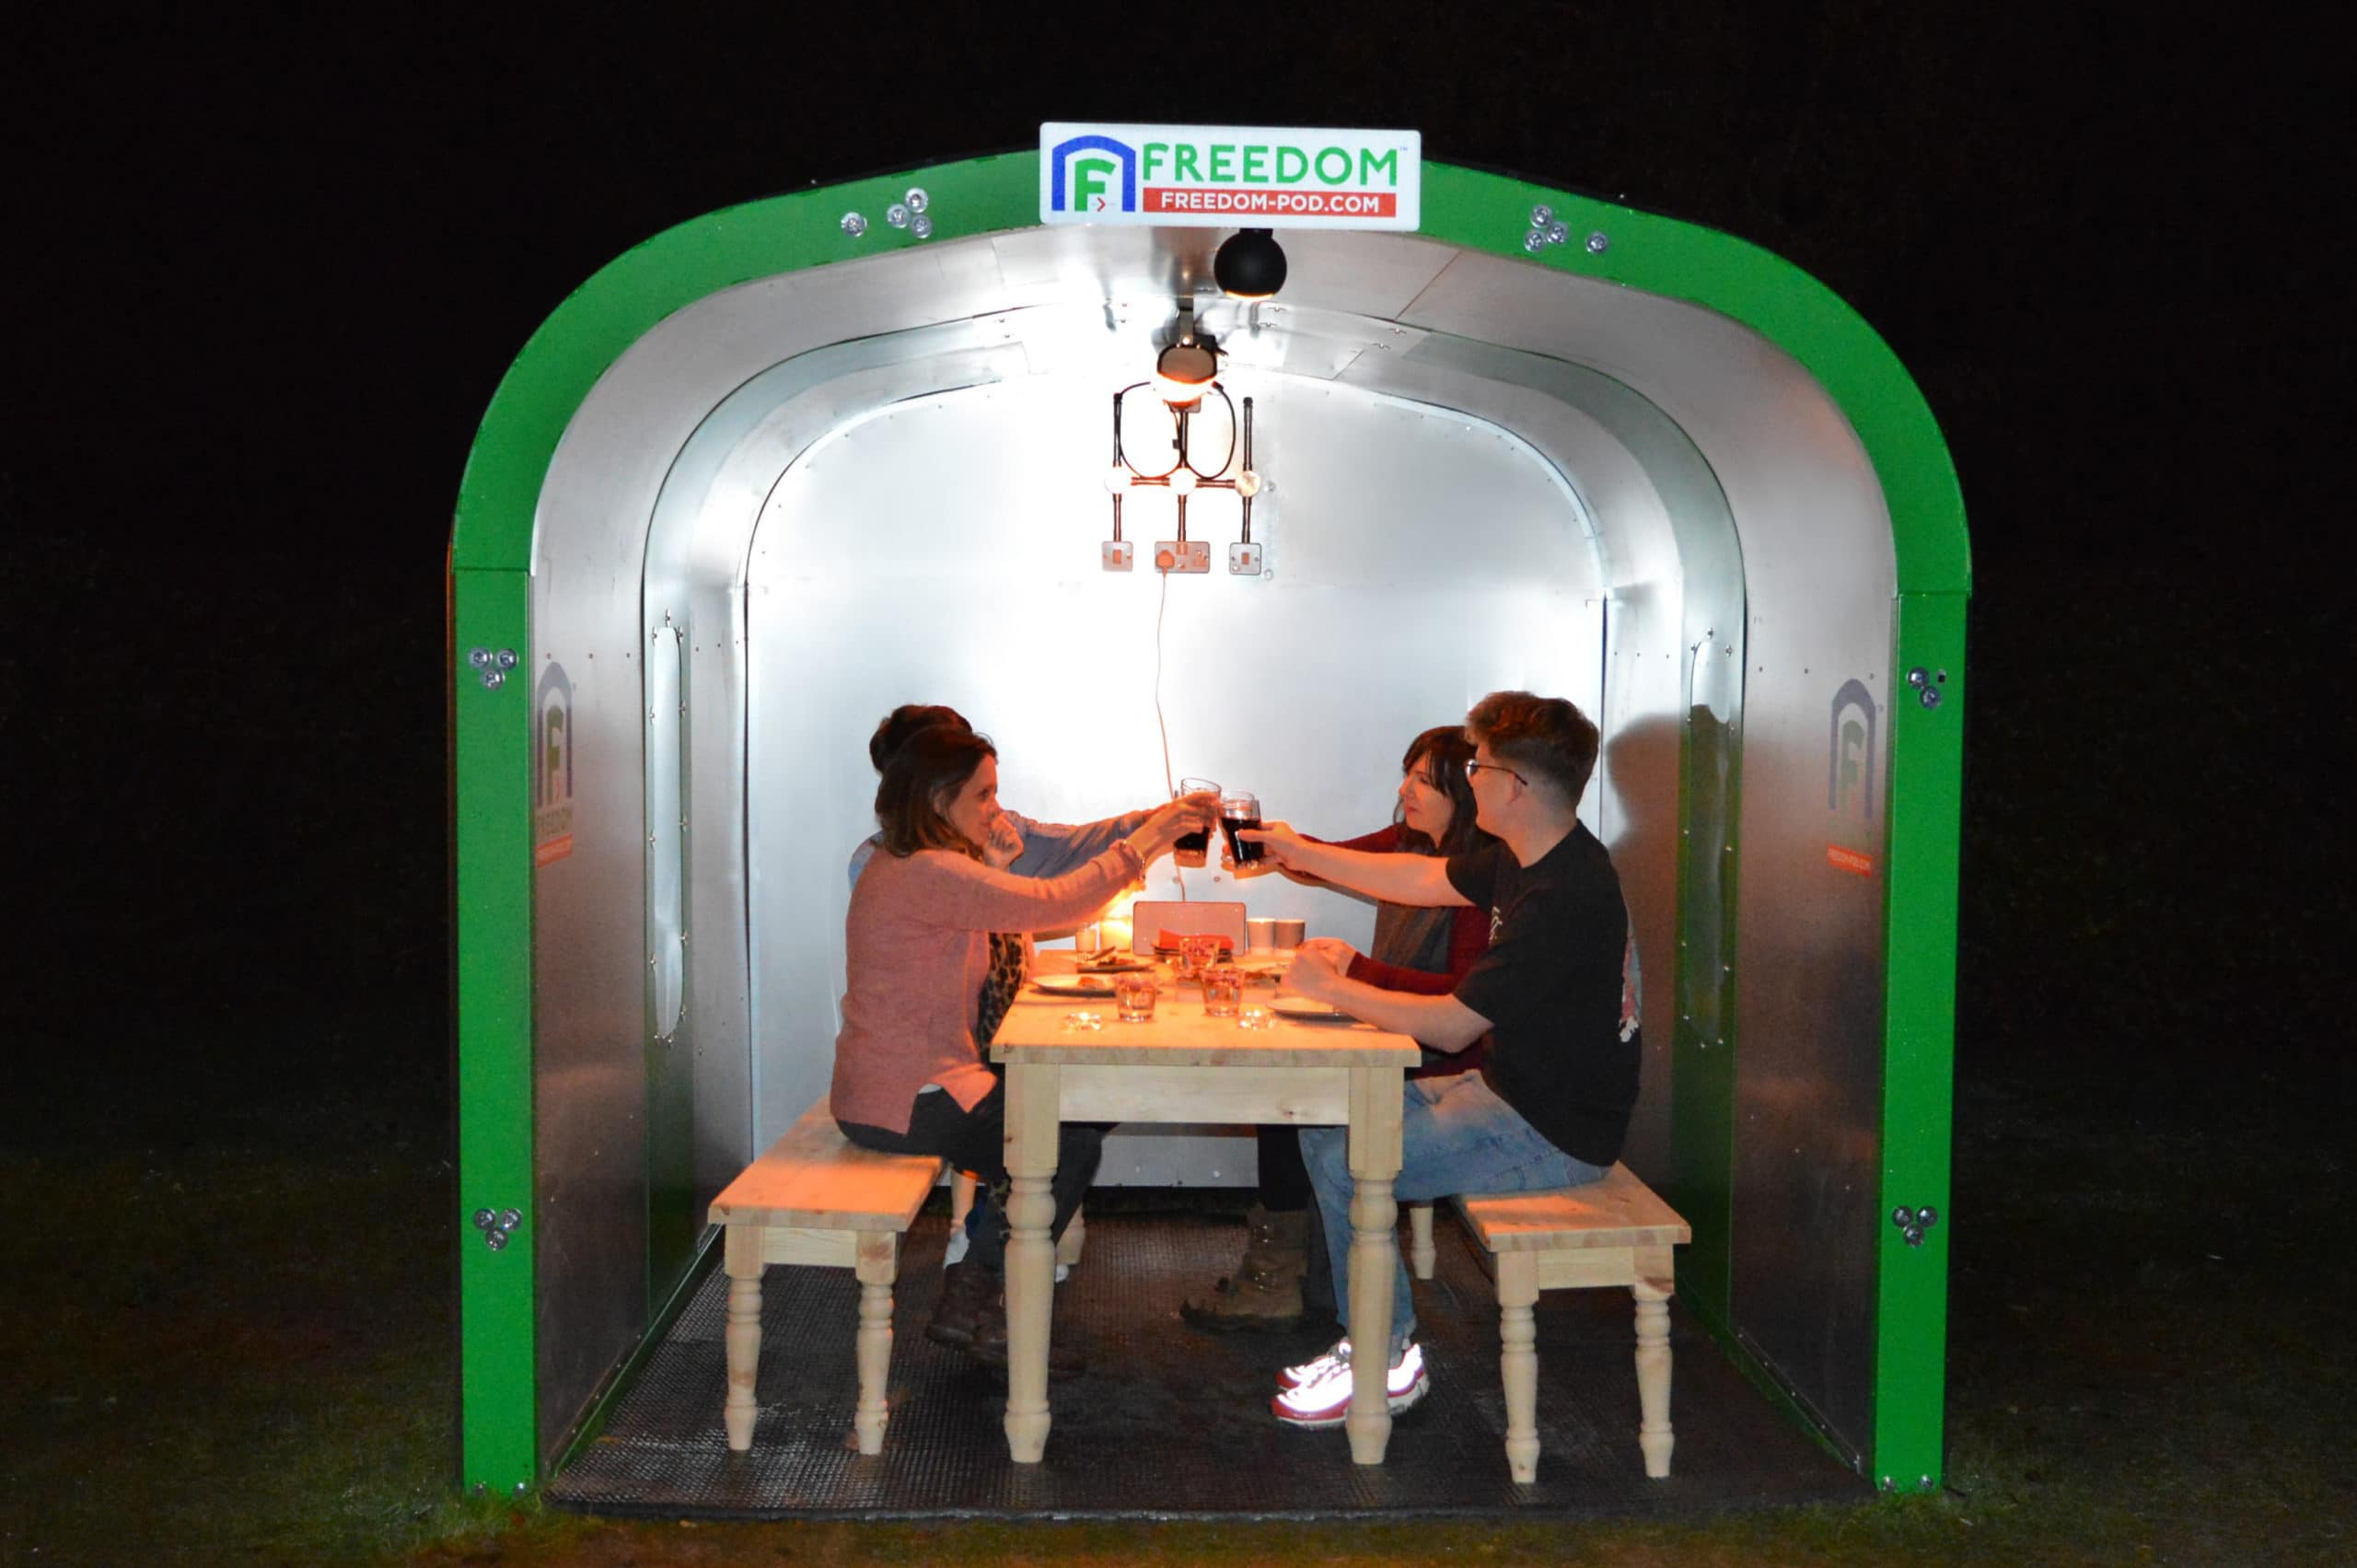 <p>Freedom-Pod-Garden-Pod-Outdoor-Pod-Restaurant-Garden-Location</p> <p>Suitable for use in a Garden as a Garden Pod for outdoor living. Located here in a Restaurant Garden with table & bench set and a family gathered for a celebration meal together</p> <p>Outdoor Pod situated in a Restaurant Garden enabling a family gathering outside in a safe environment to minimise COVID spread</p> <p>Also Suitable for outdoor dining areas at pubs, restaurants, golf courses, hotels or even at home as an outdoor work from home office pod or garden dining pod</p>